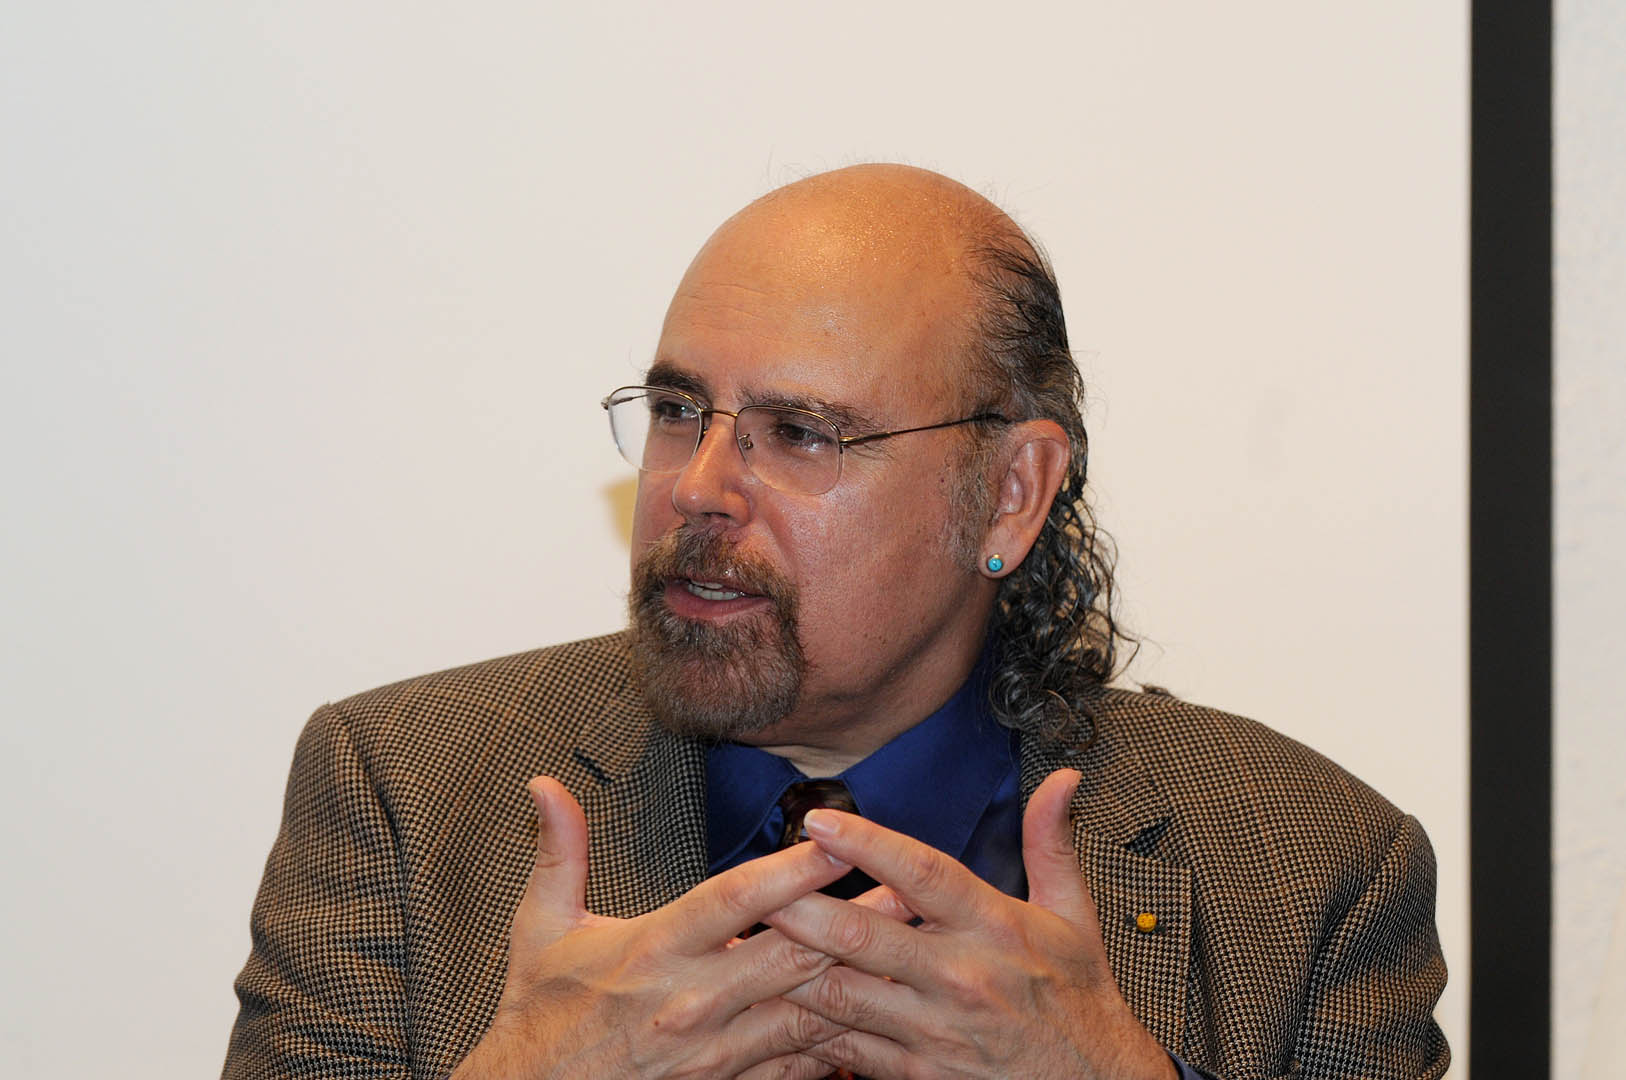 Davíd Carrasco. (Photograph courtesy of Harvard Divinity School)